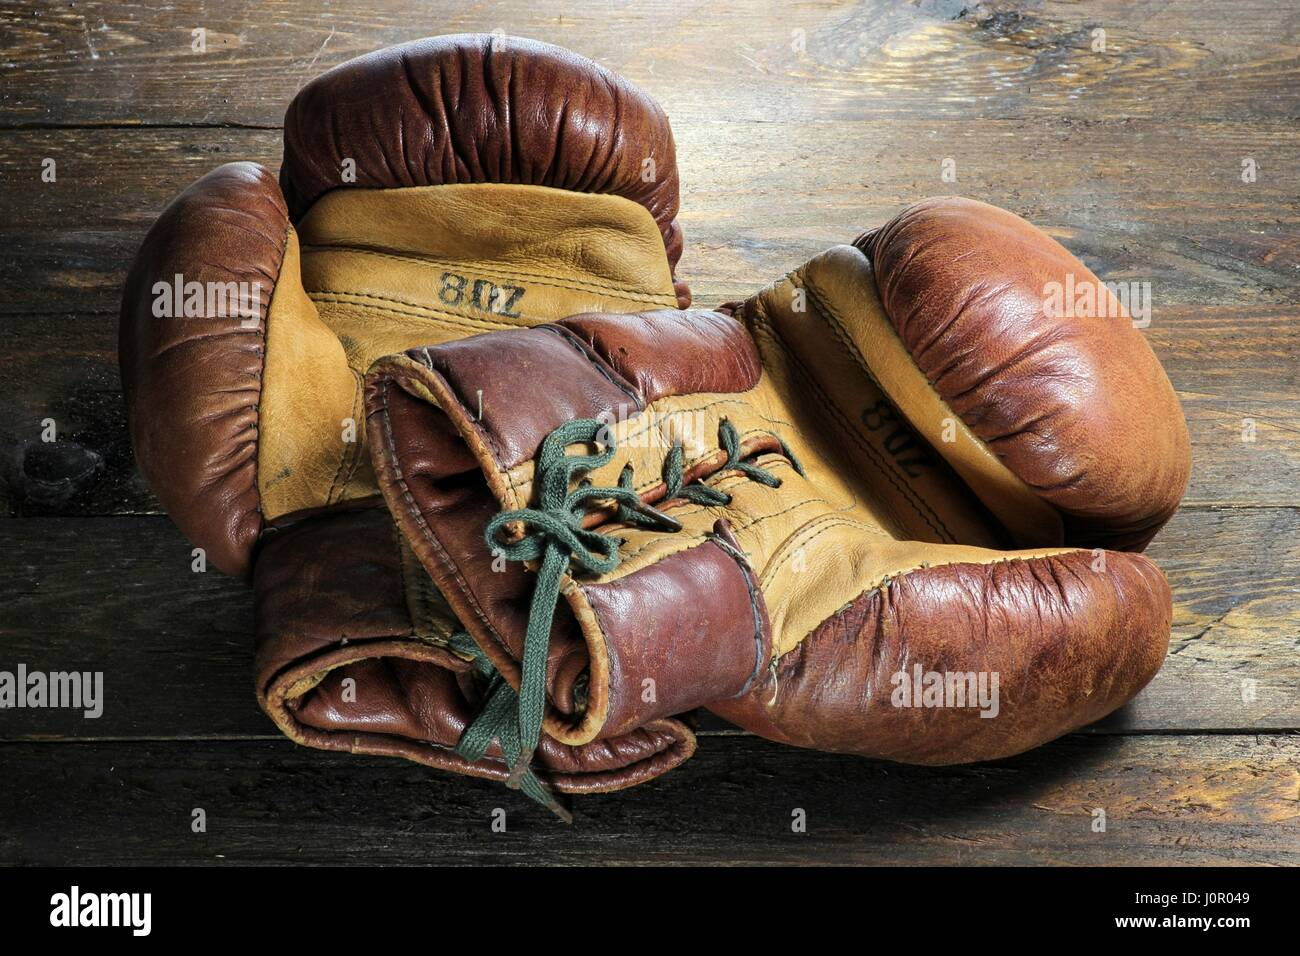 vintage boxing gloves on wooden background - Stock Image